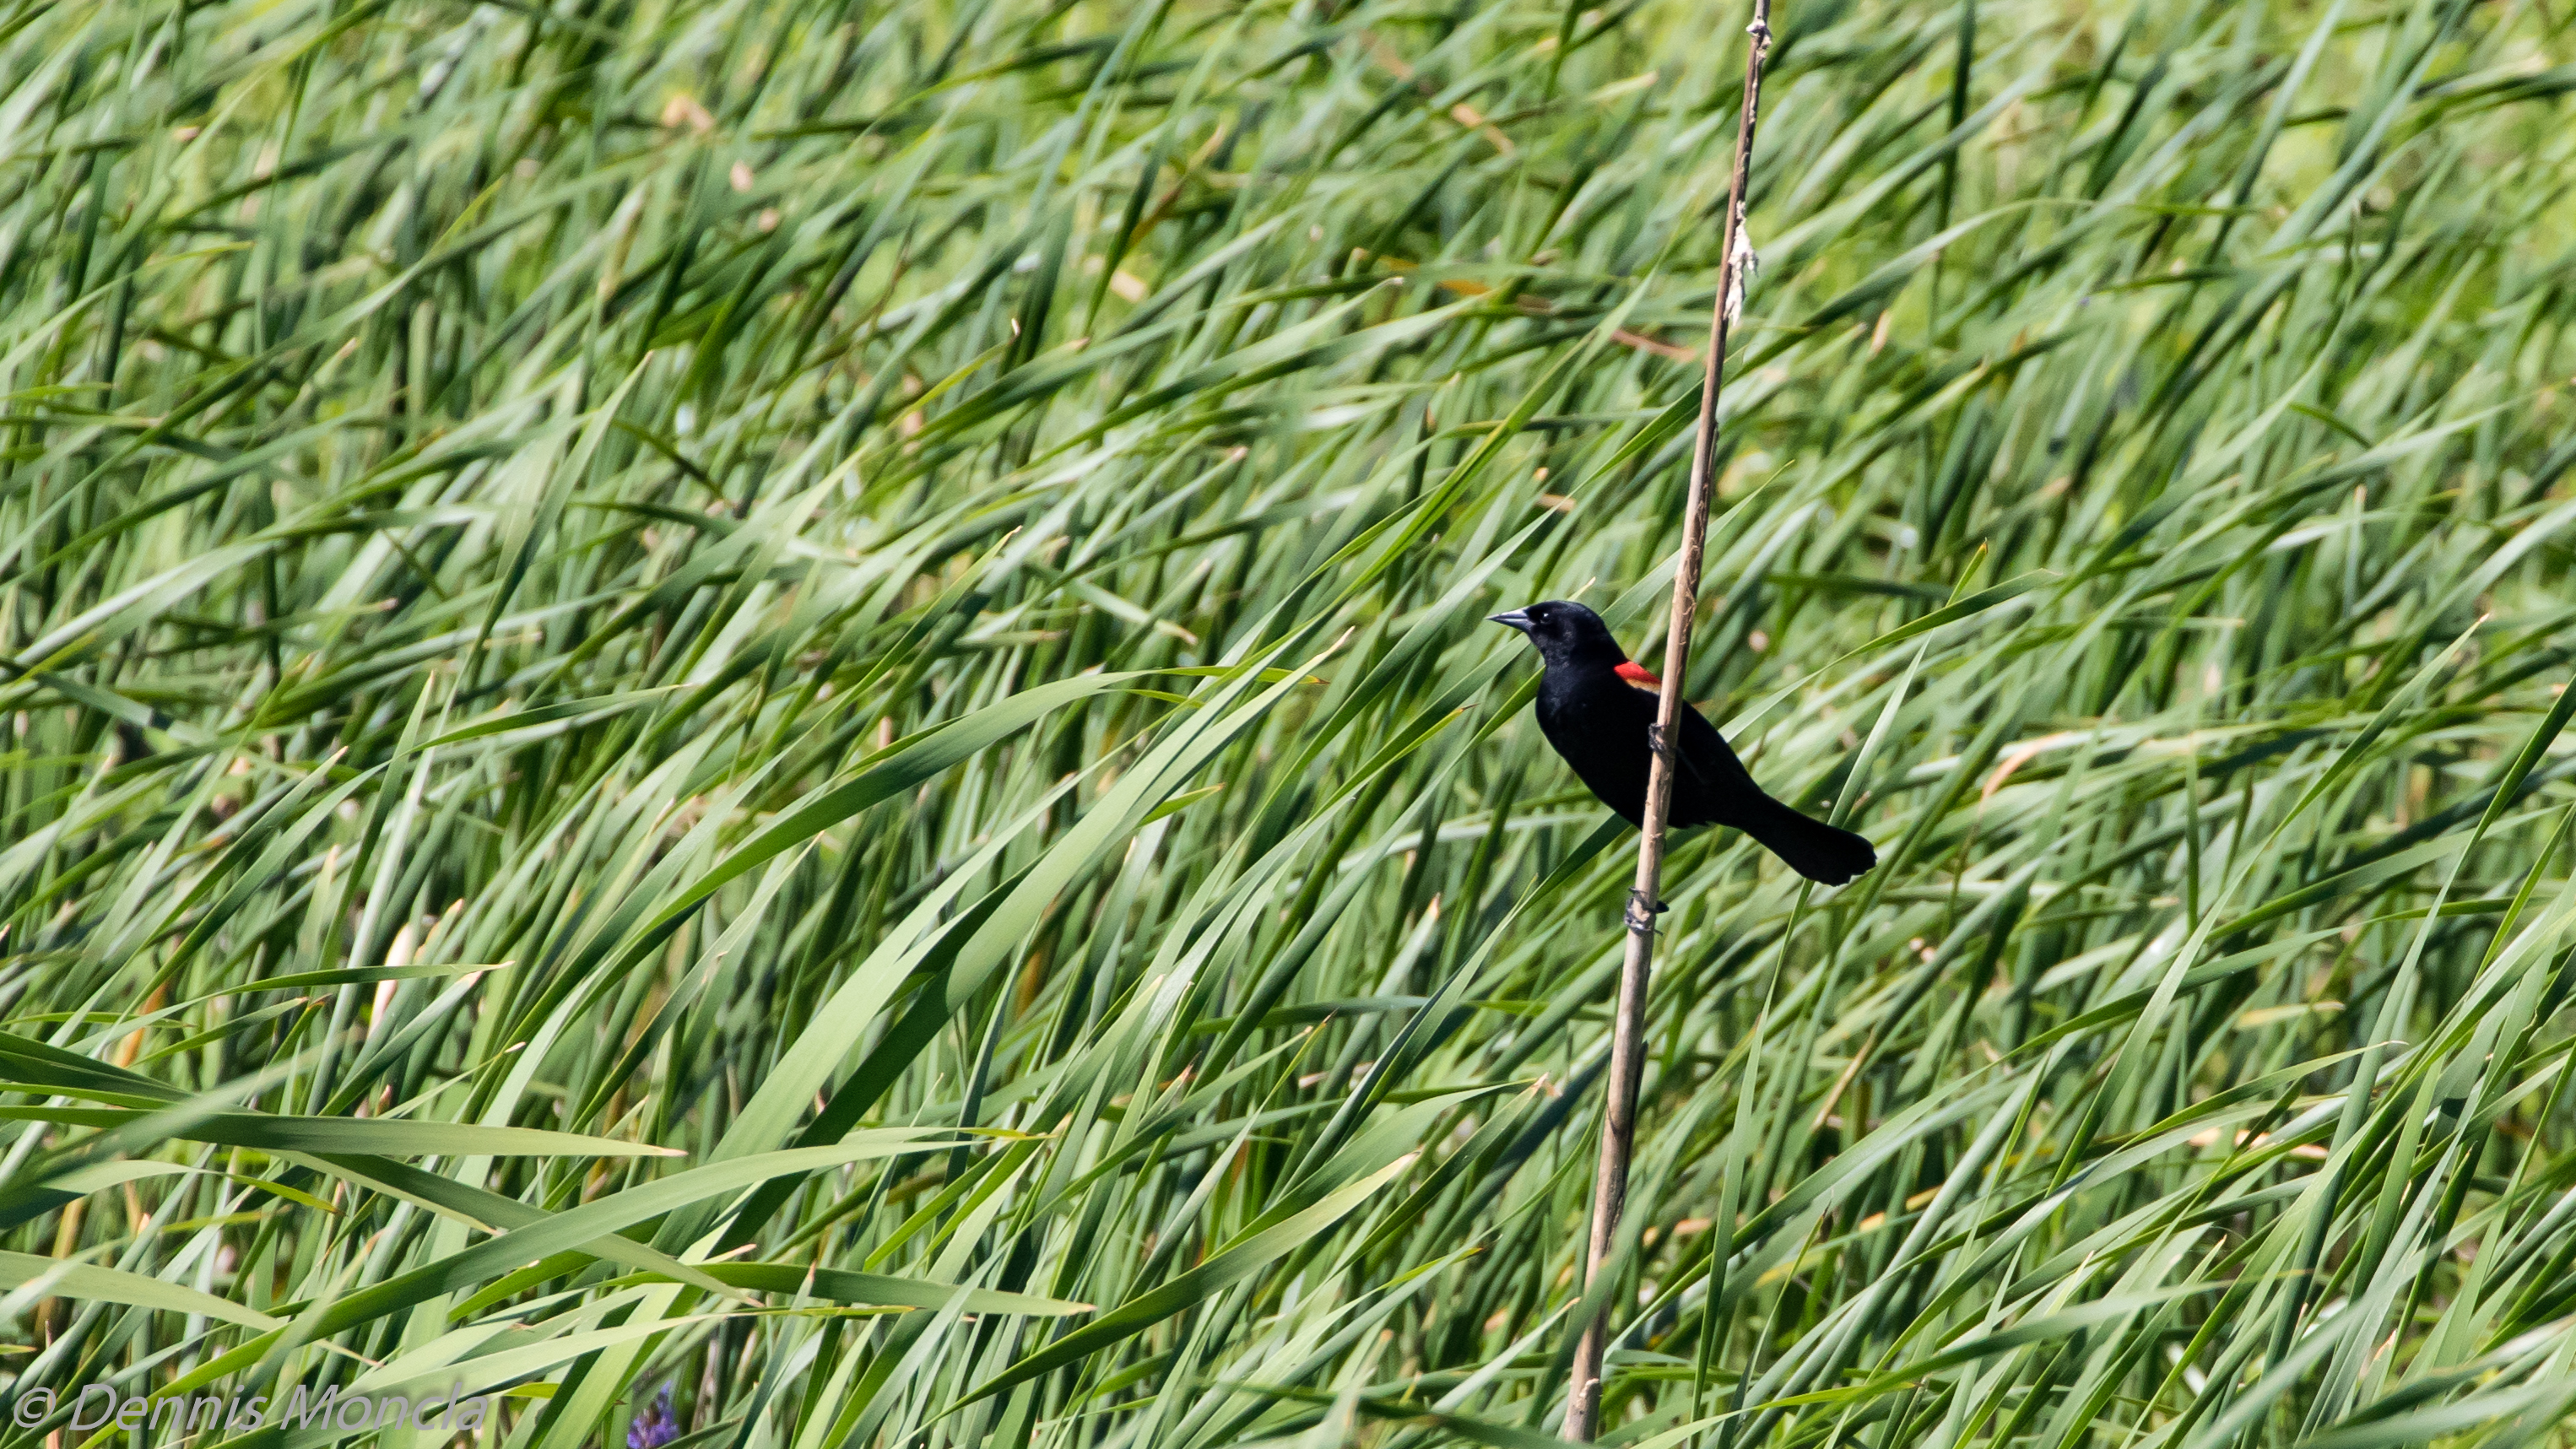 Red Wing Black Bird in Grass.jpg